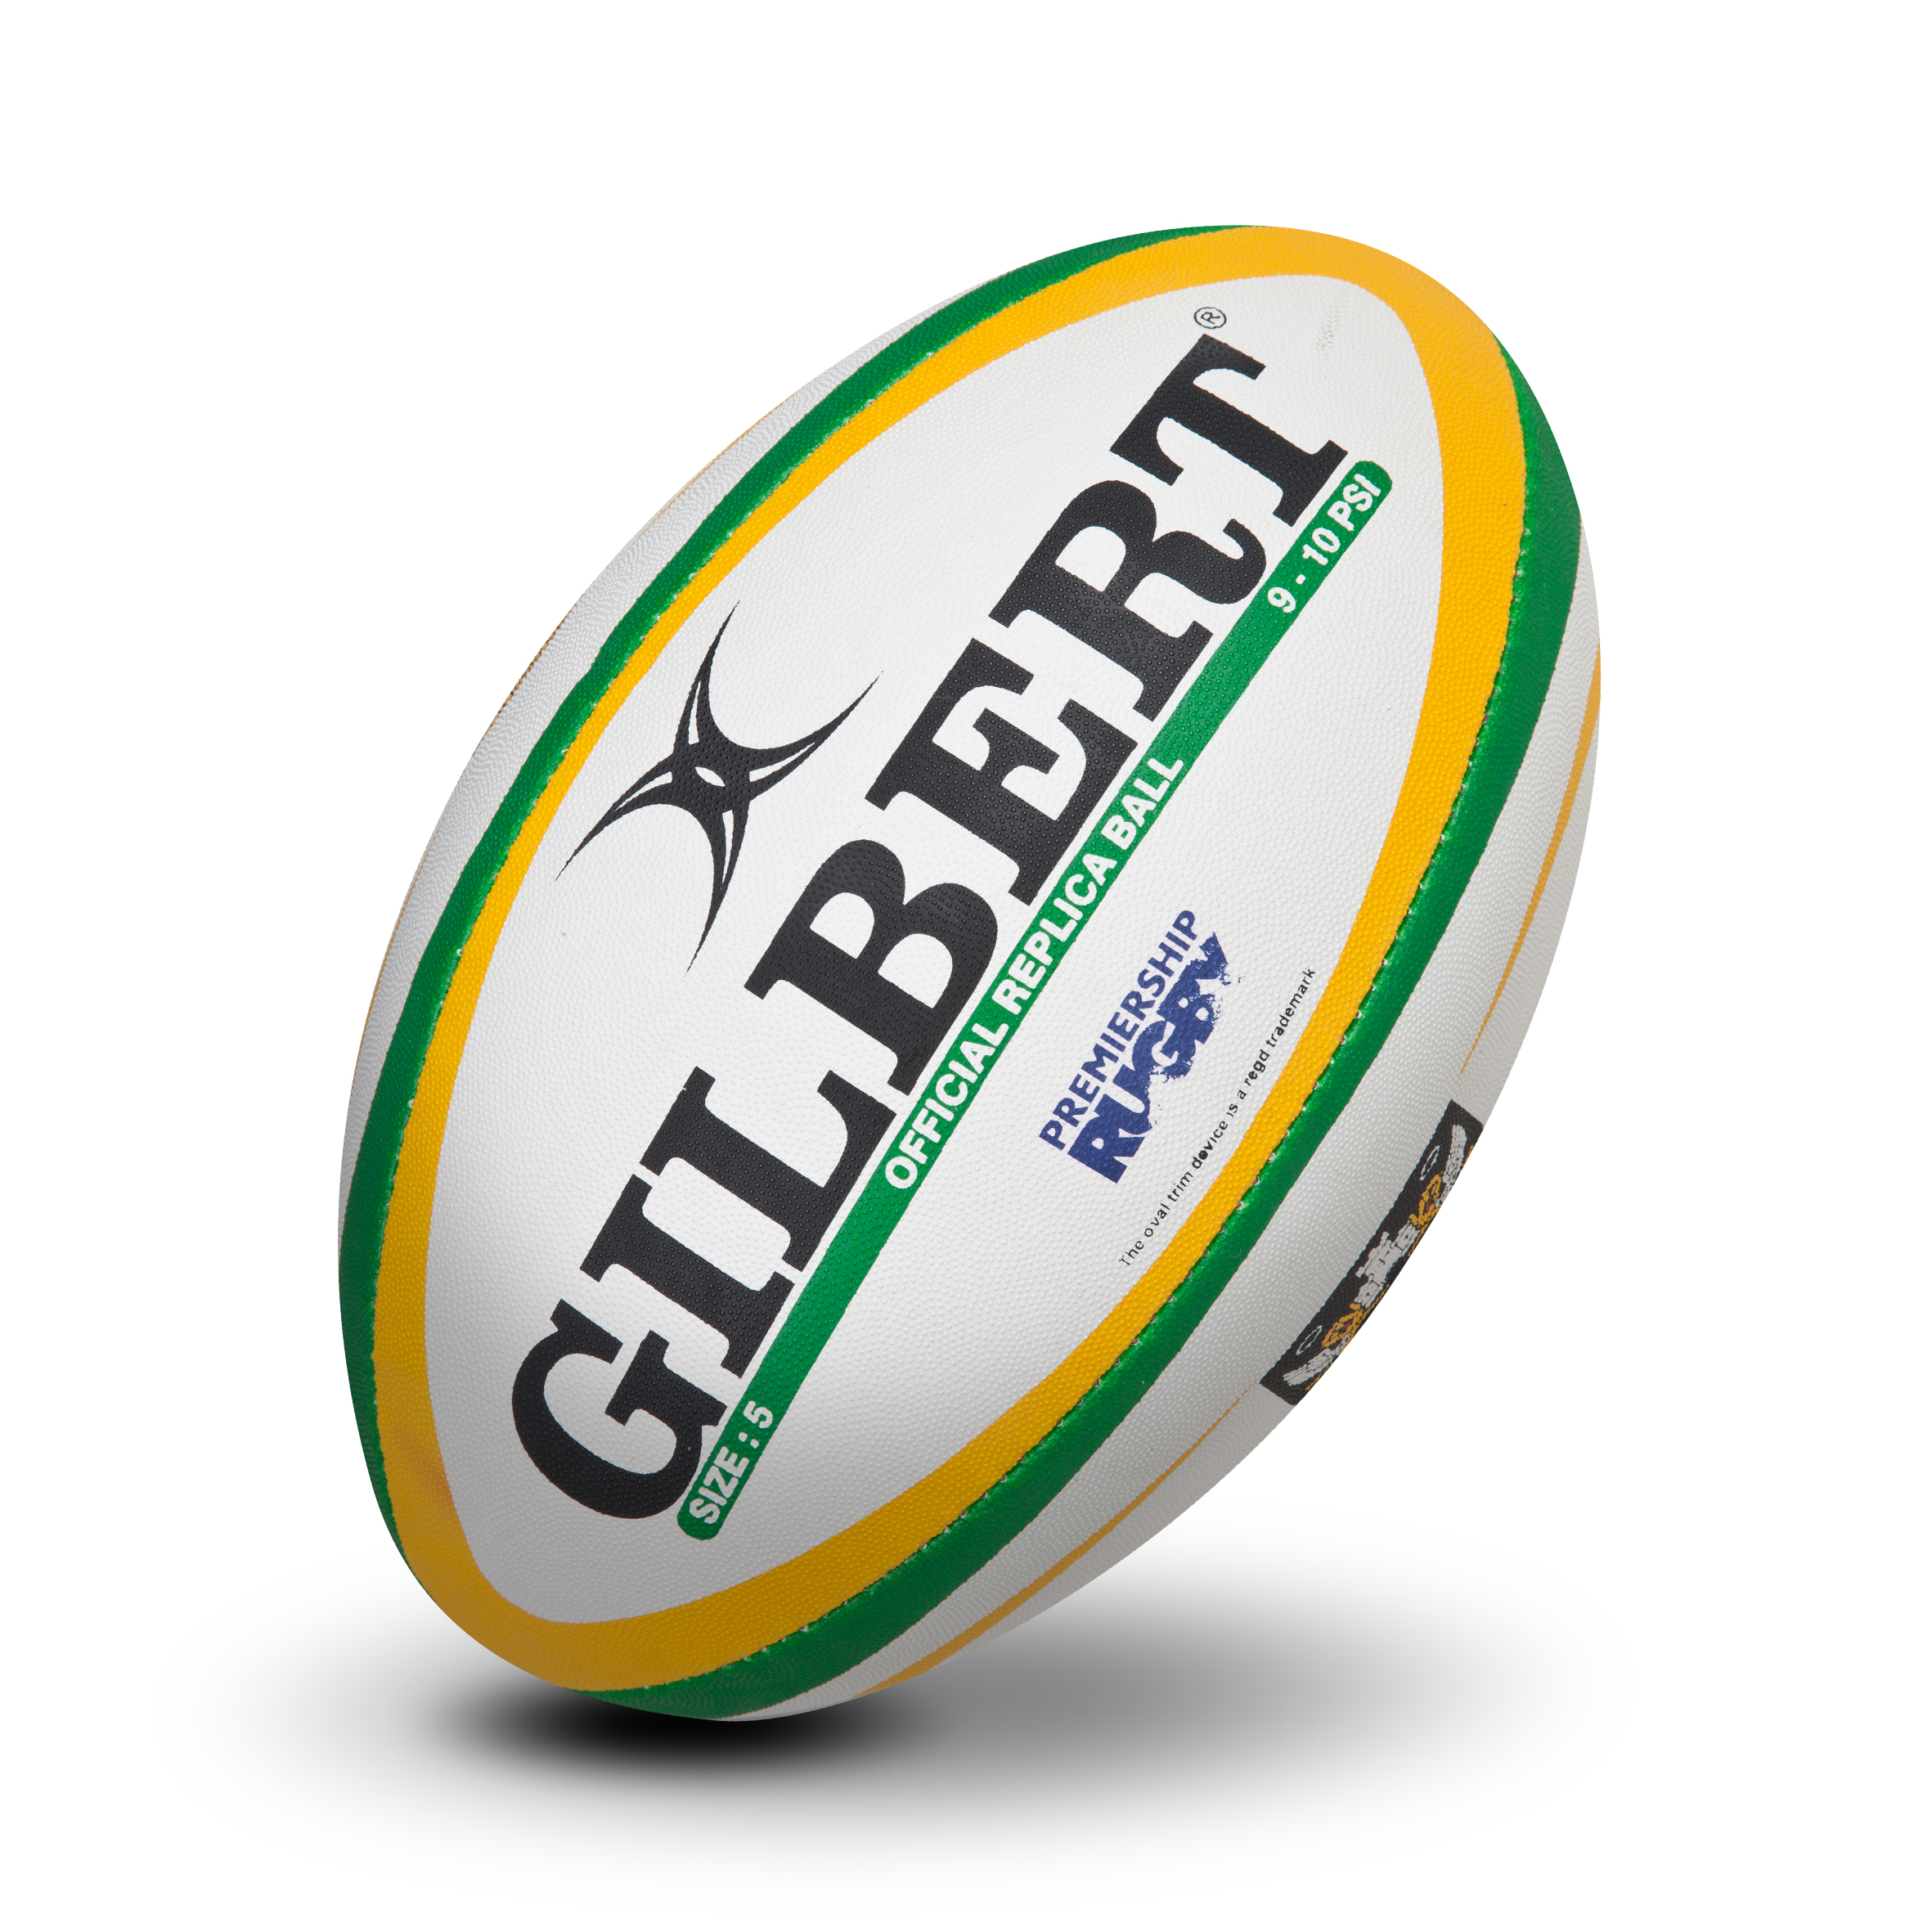 Gilbert Replica Rugby Ball - Green/Navy - Size 5 - White/Green/Yellow